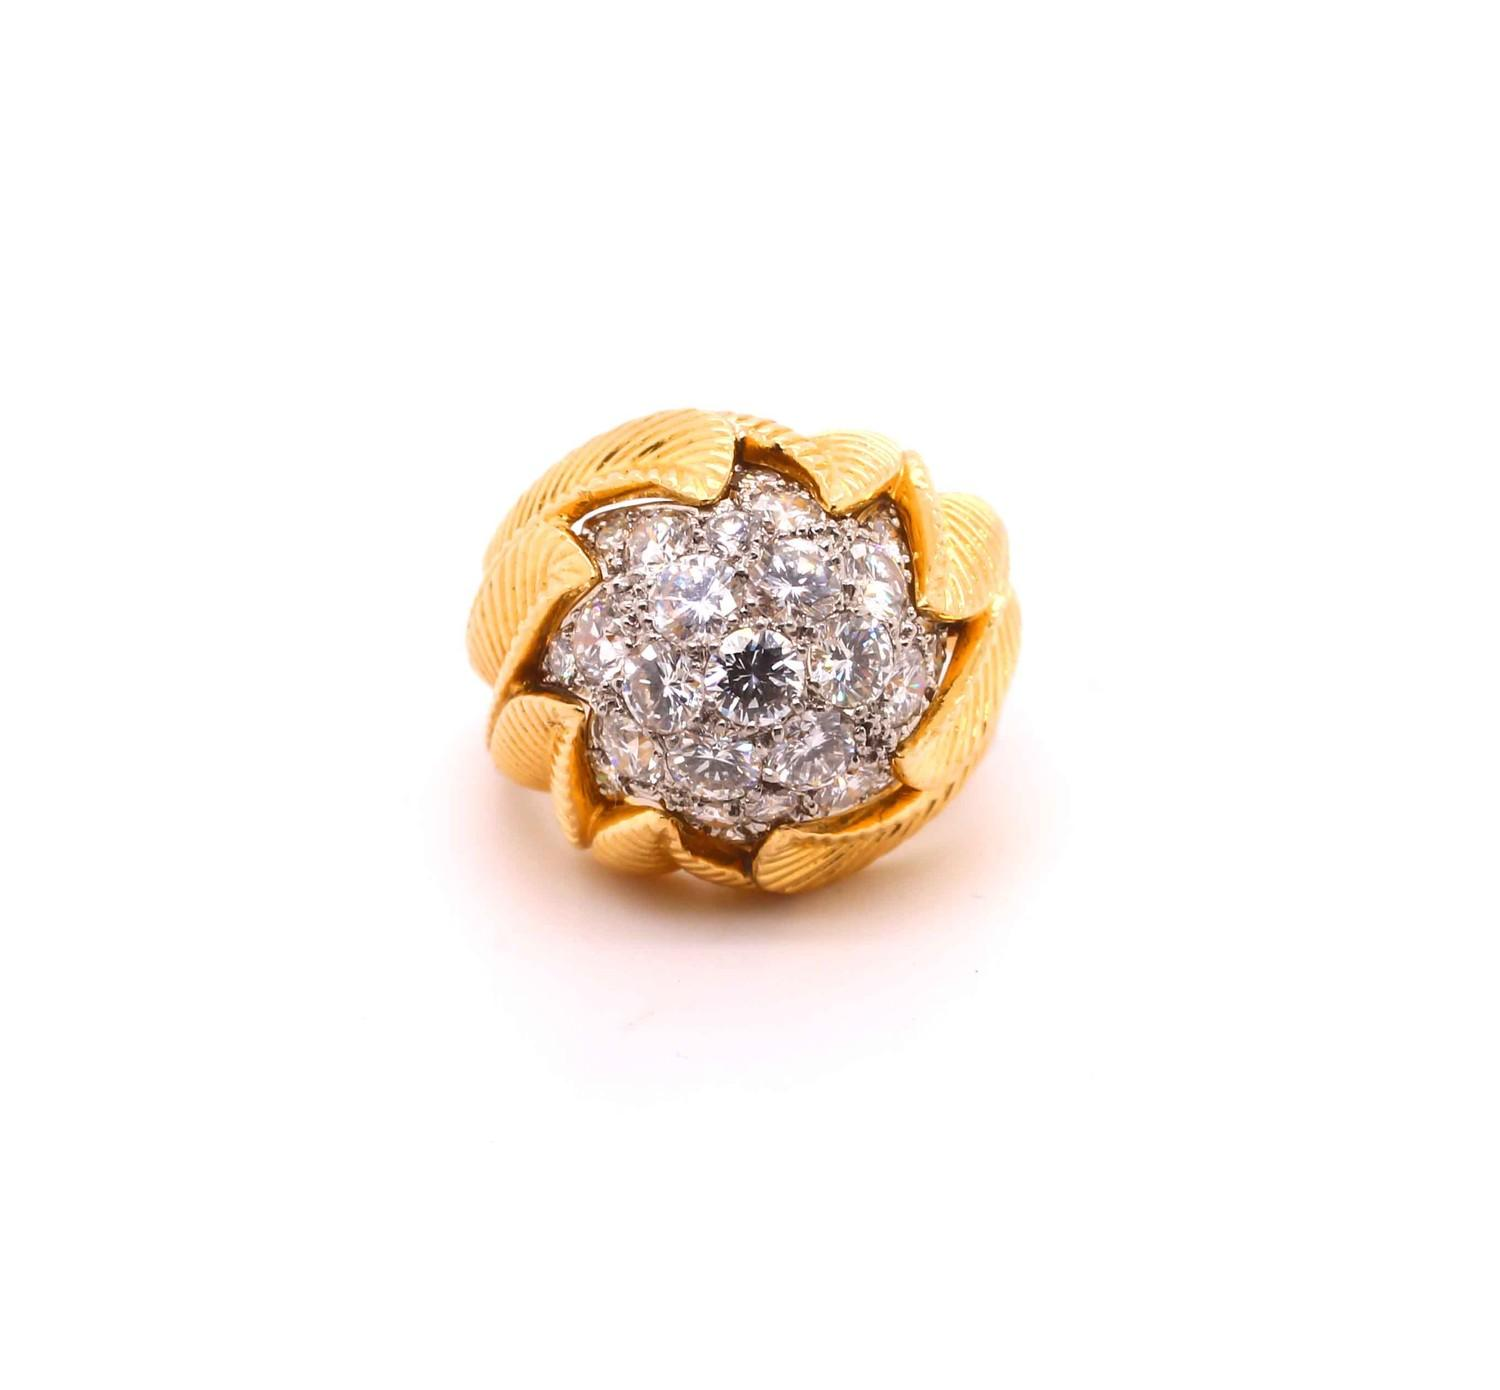 A Van Cleef & Aprel Cocktail Ring with a Pave set diamond flame ring mounted in an intricate - Image 4 of 7